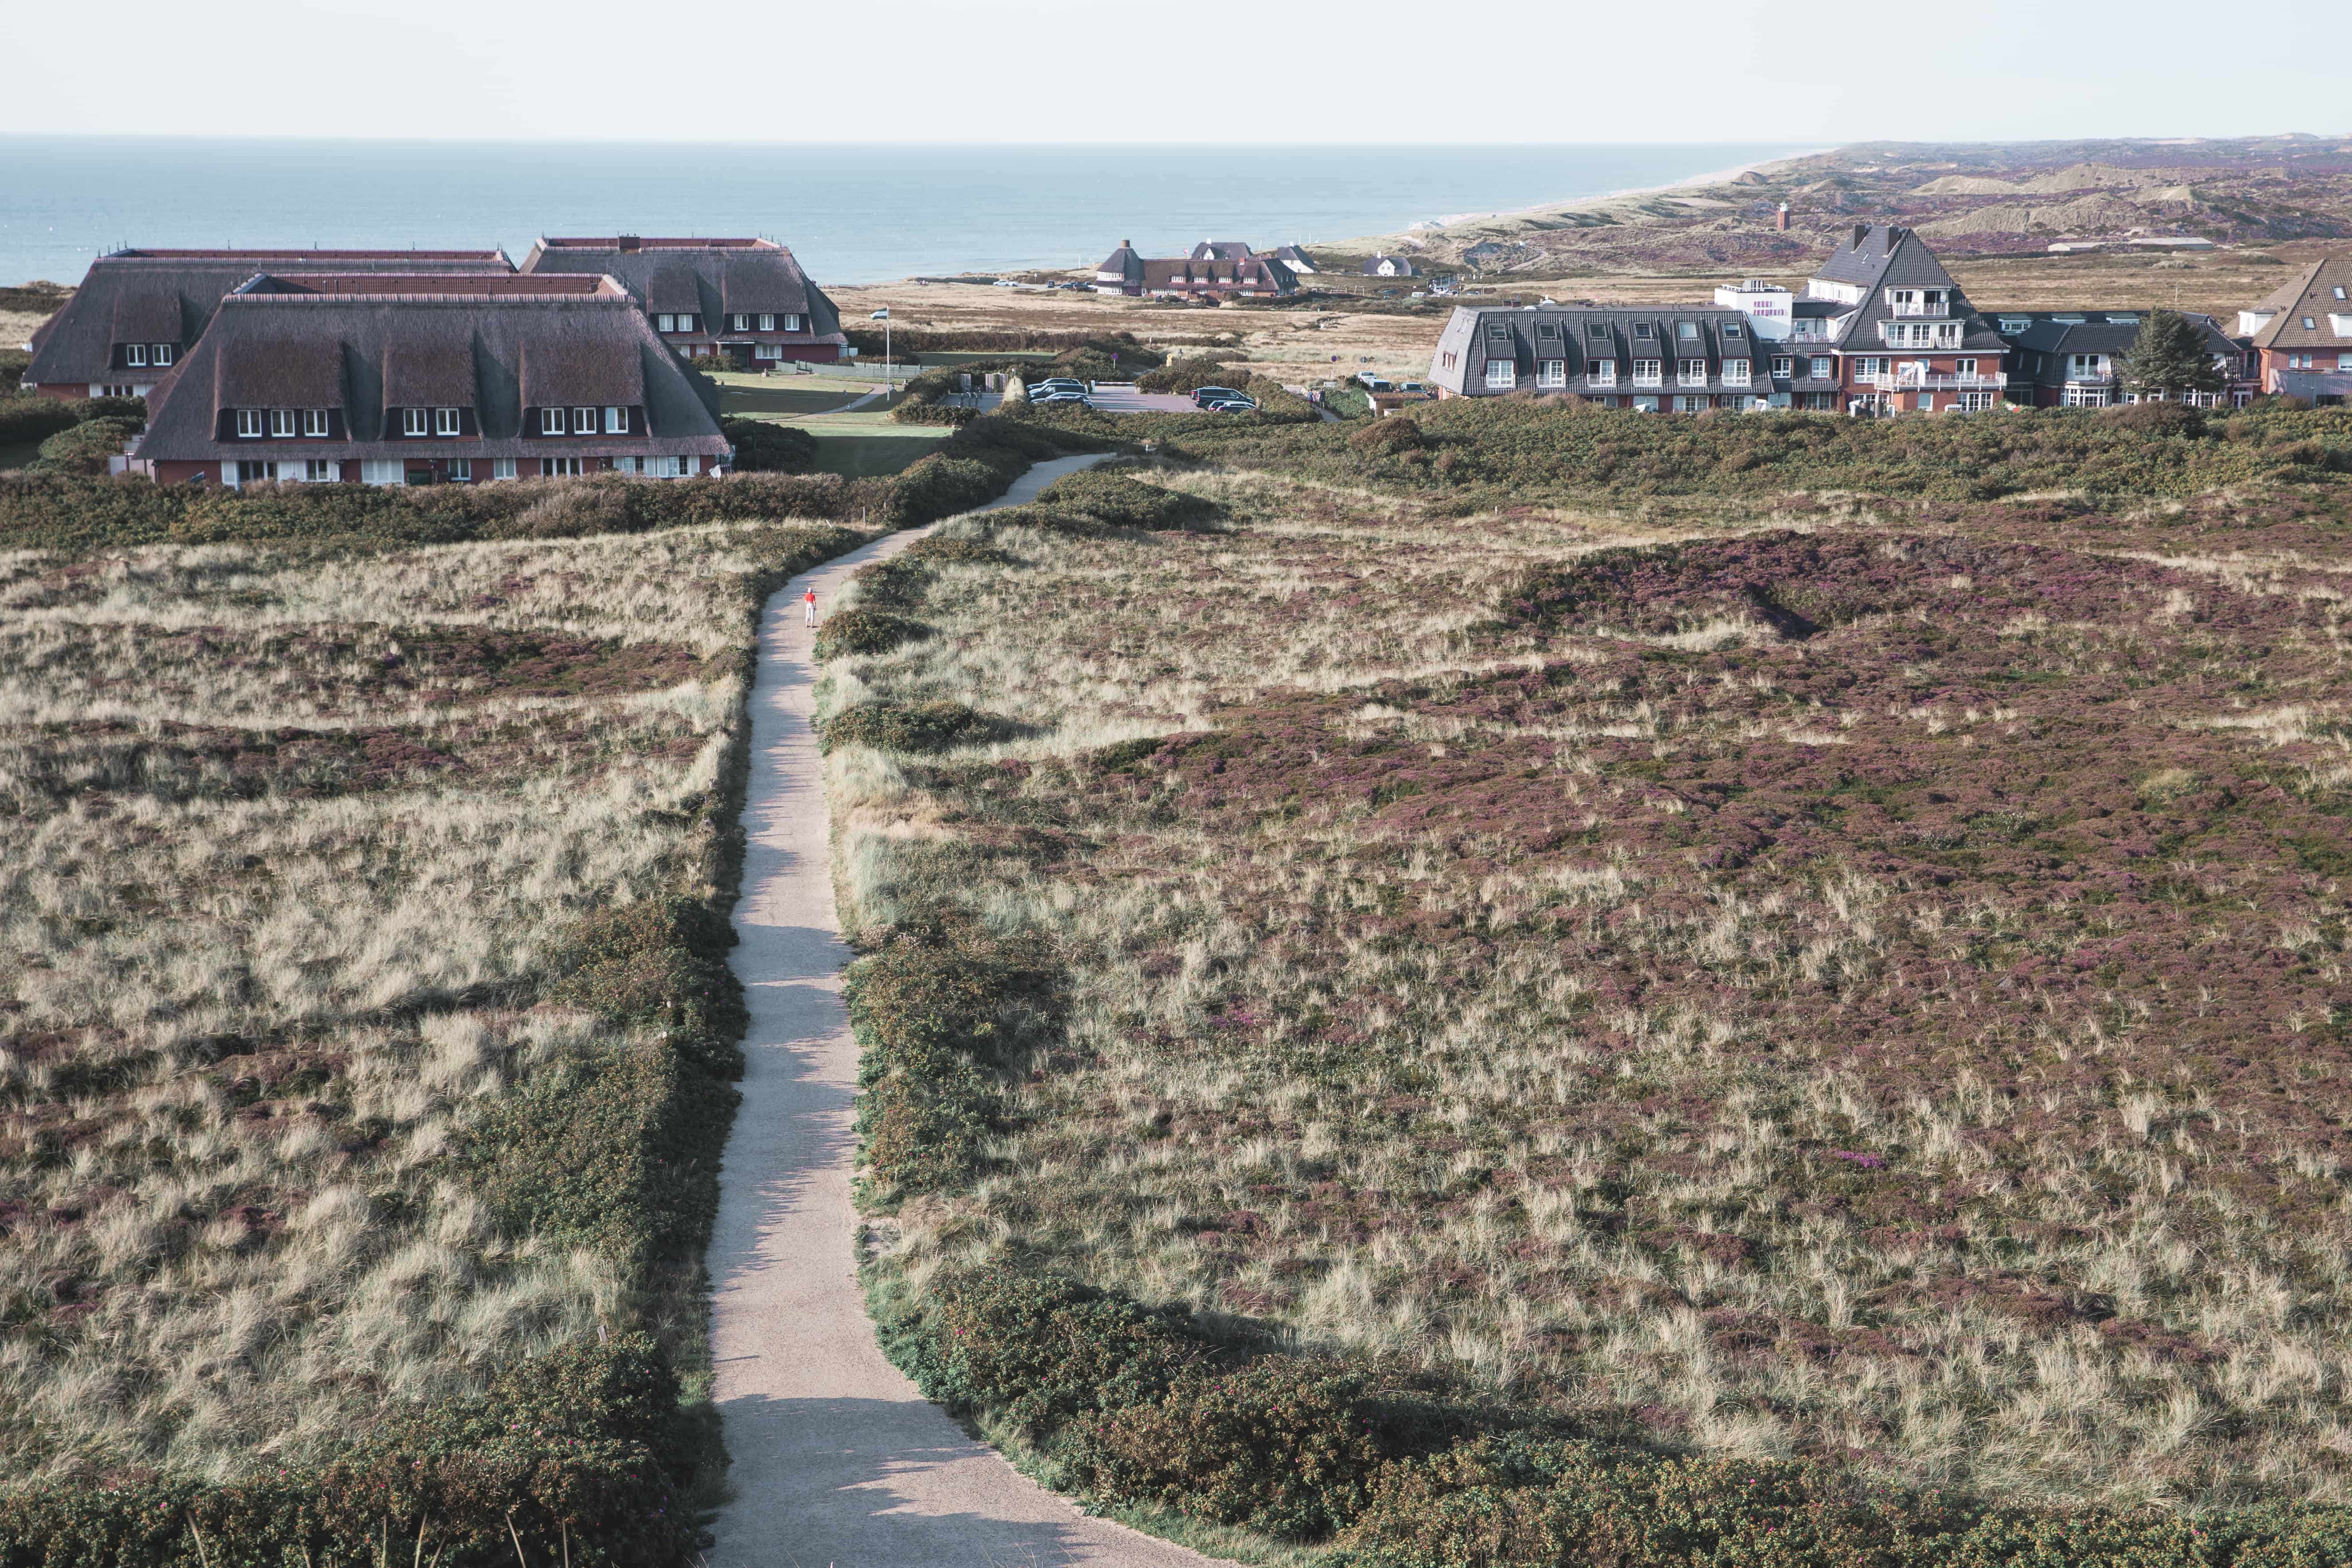 View of traditional thatched German houses from Uwe-Düne (Uwe Dune) on the island of Sylt in Germany